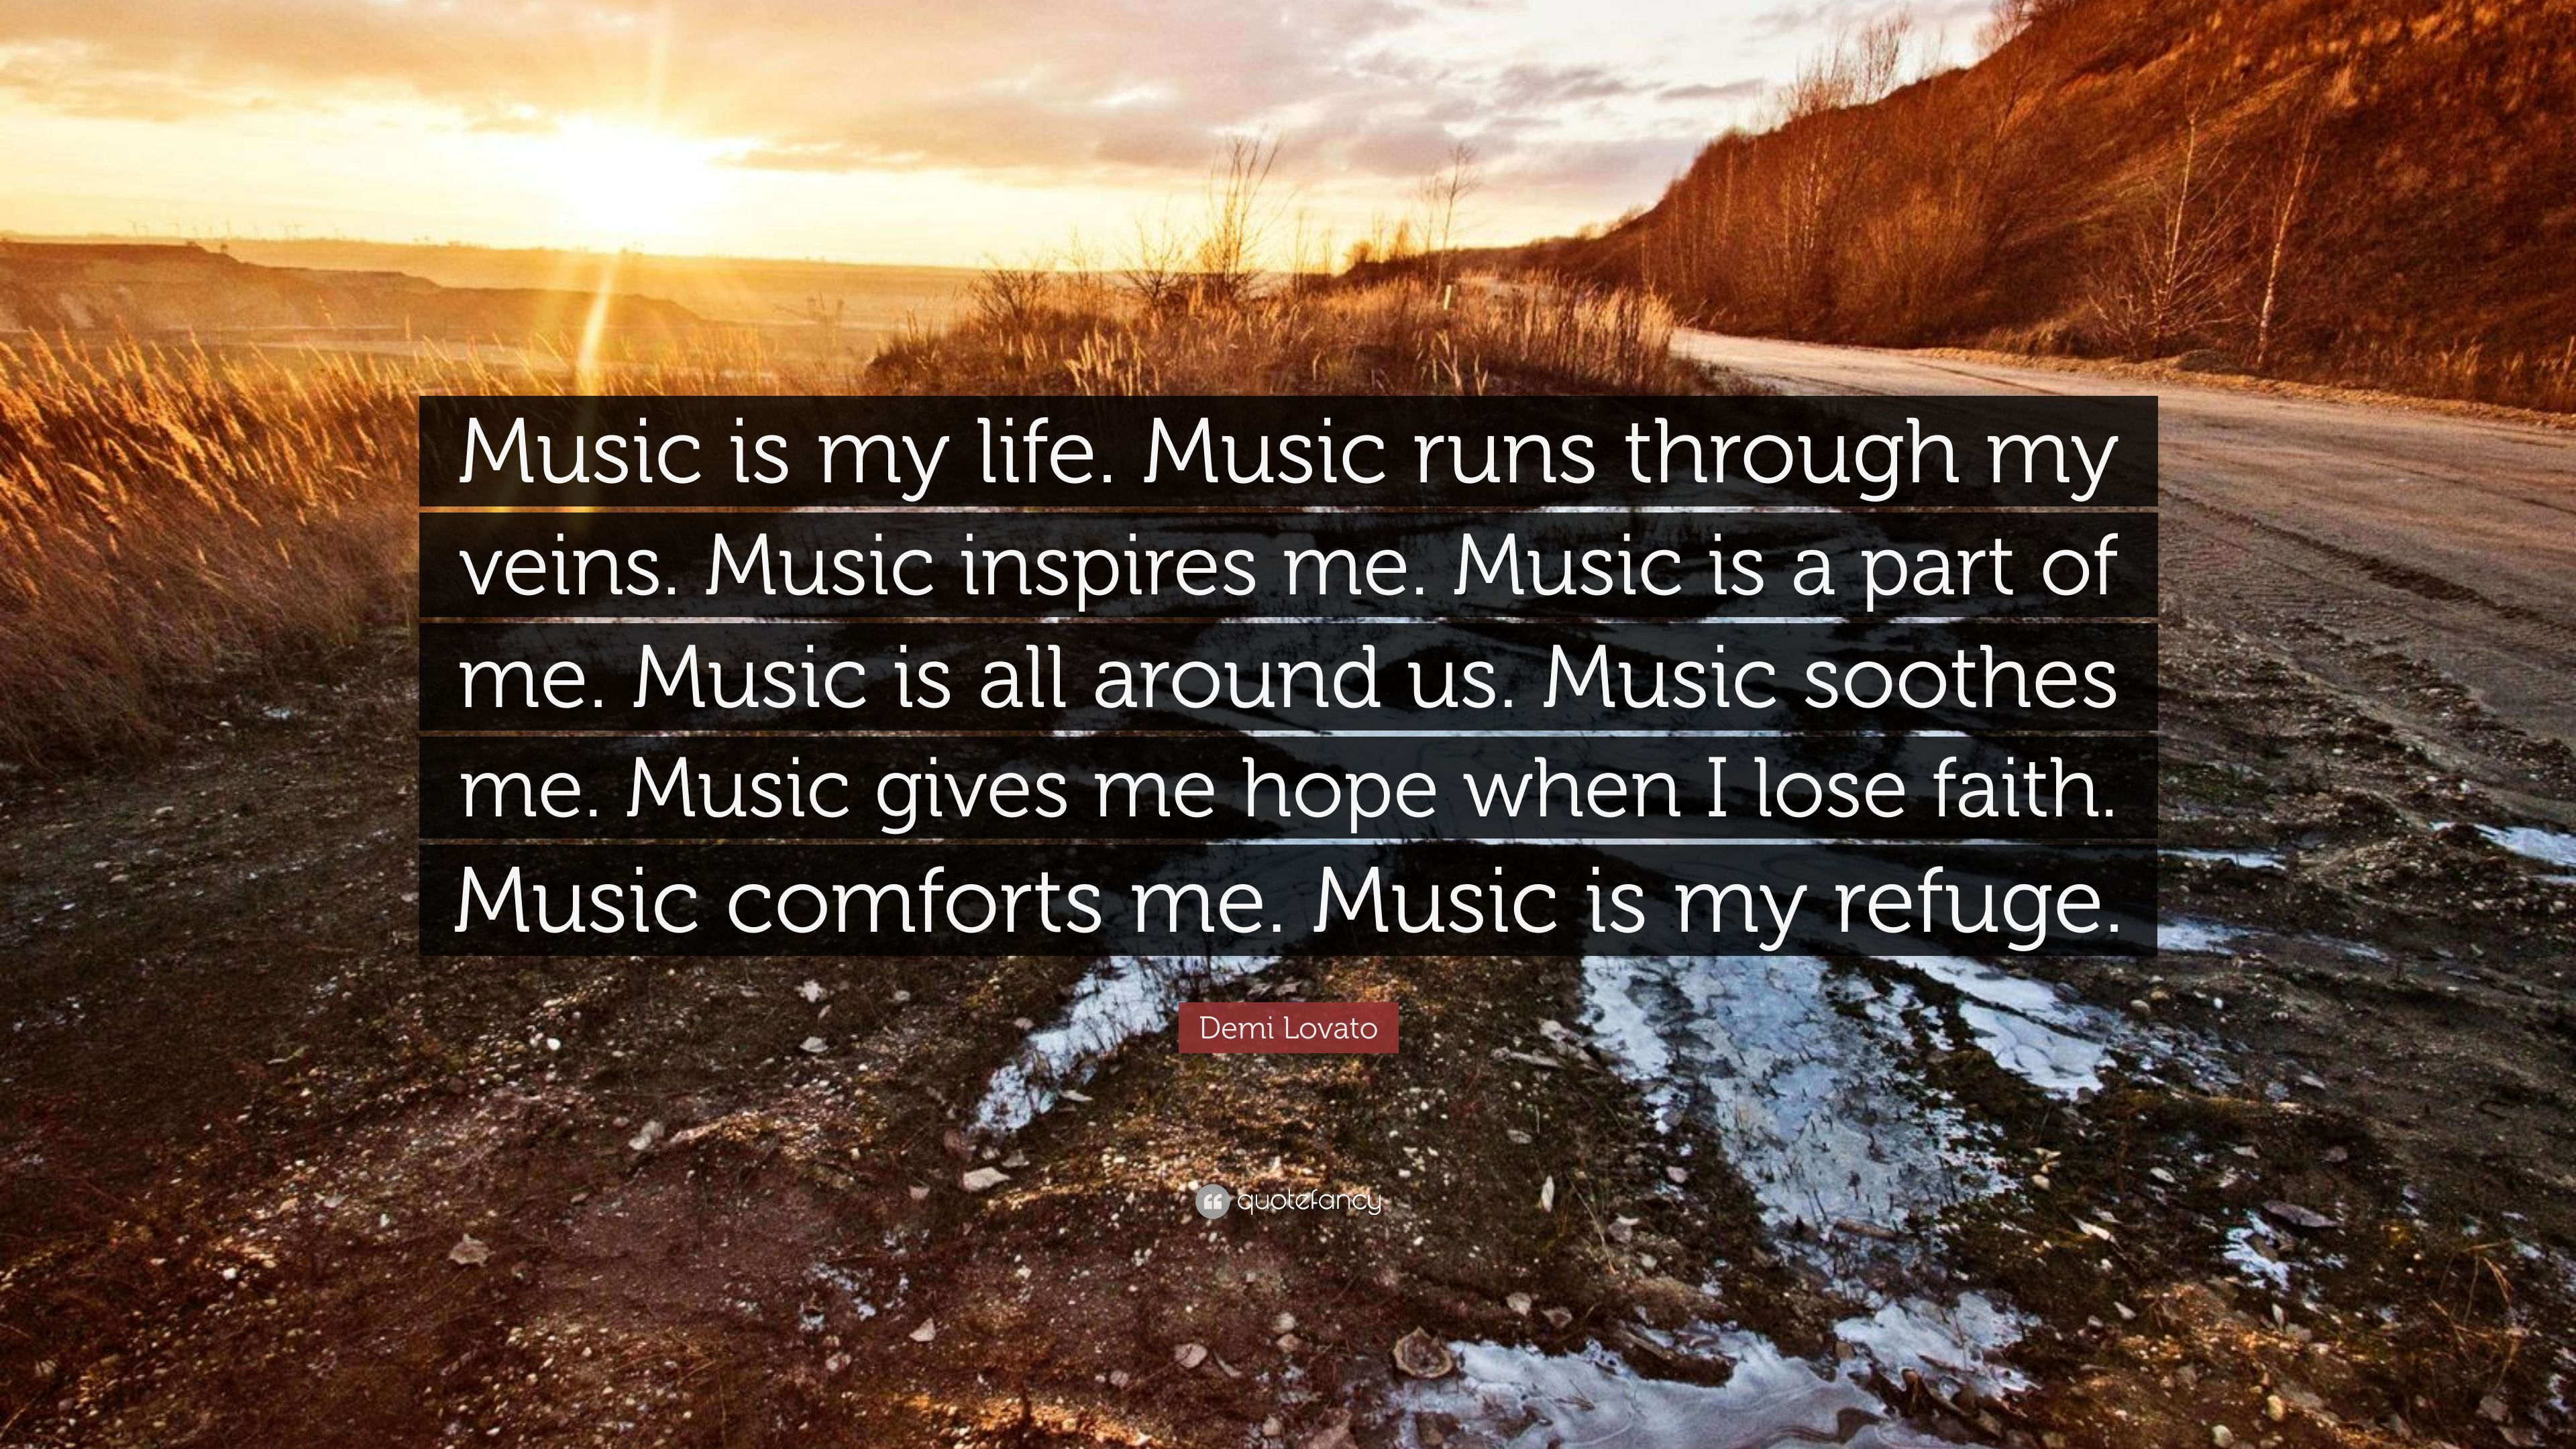 Demi Lovato Quote Music Is My Life Music Runs Through My Veins Music Inspires Me Music Is A Part Of Me Music Is All Around Us Music S